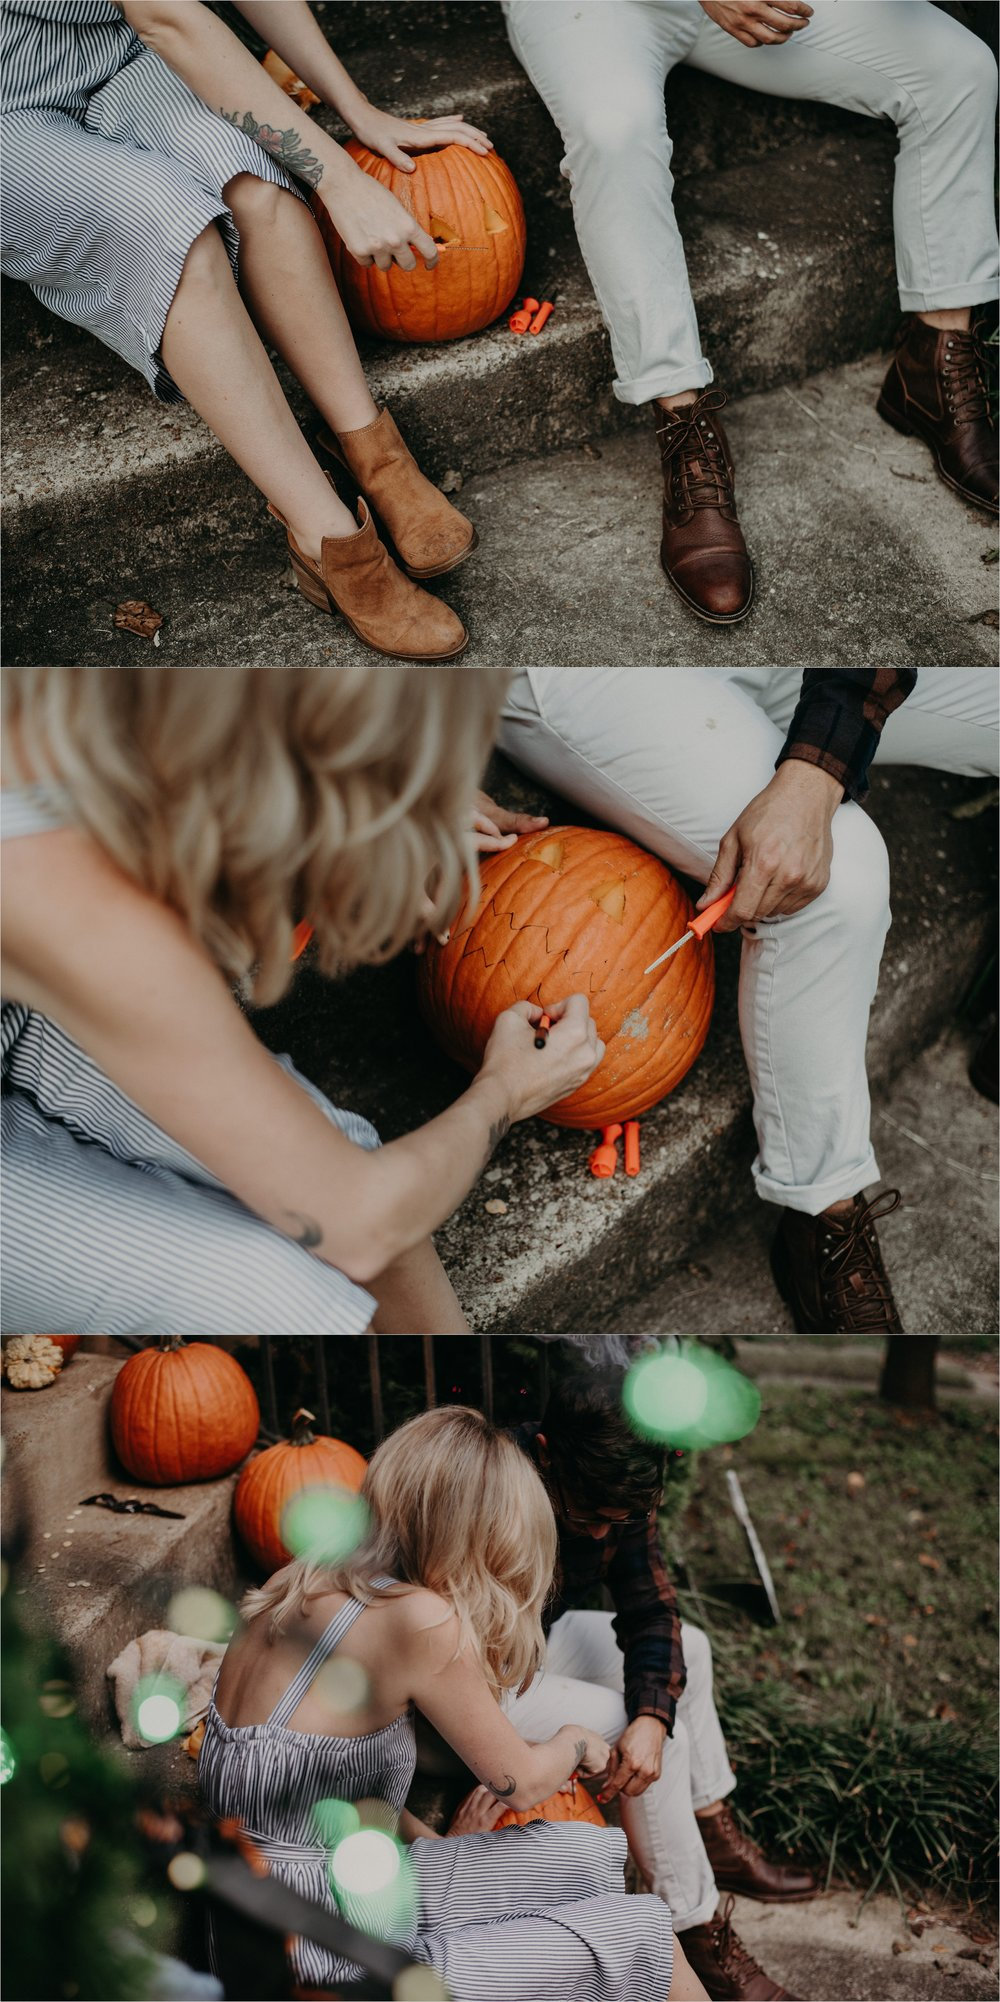 Taylor_English_Photography_Pumpkin_Carving_Chattanooga_Tennessee_0014.jpg